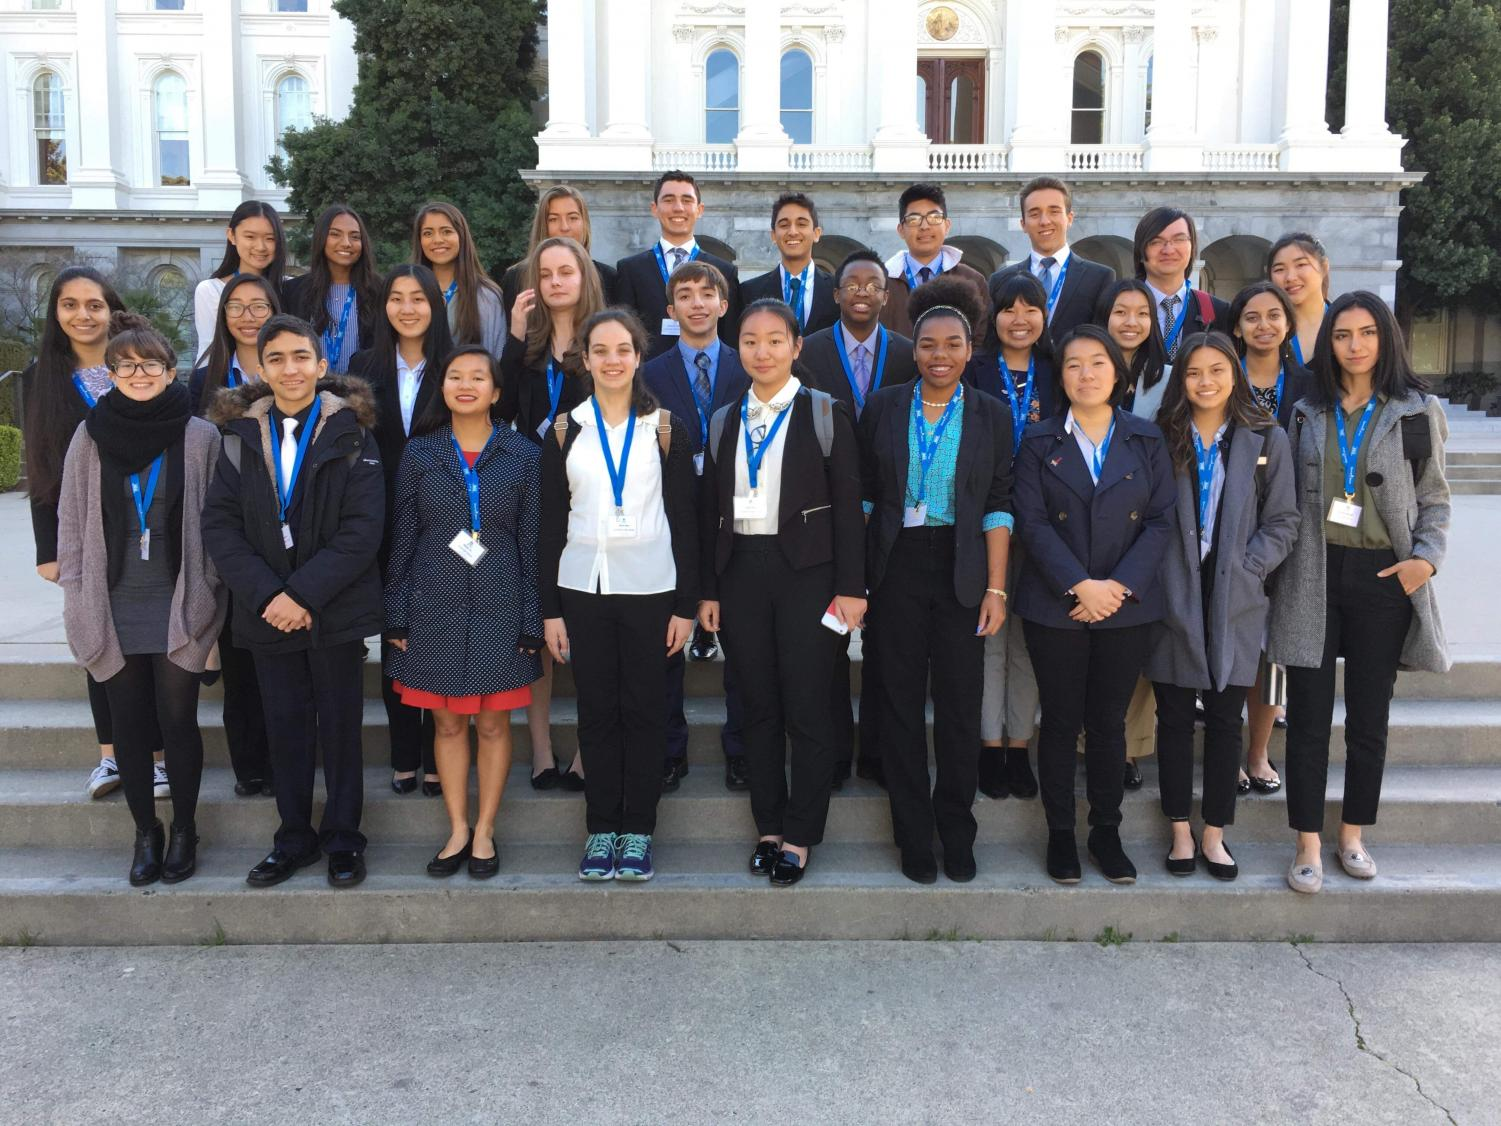 Students from the Irvine Unified School District gather together in front of the Capitol Building in Sacramento to discuss legislative impact on education.